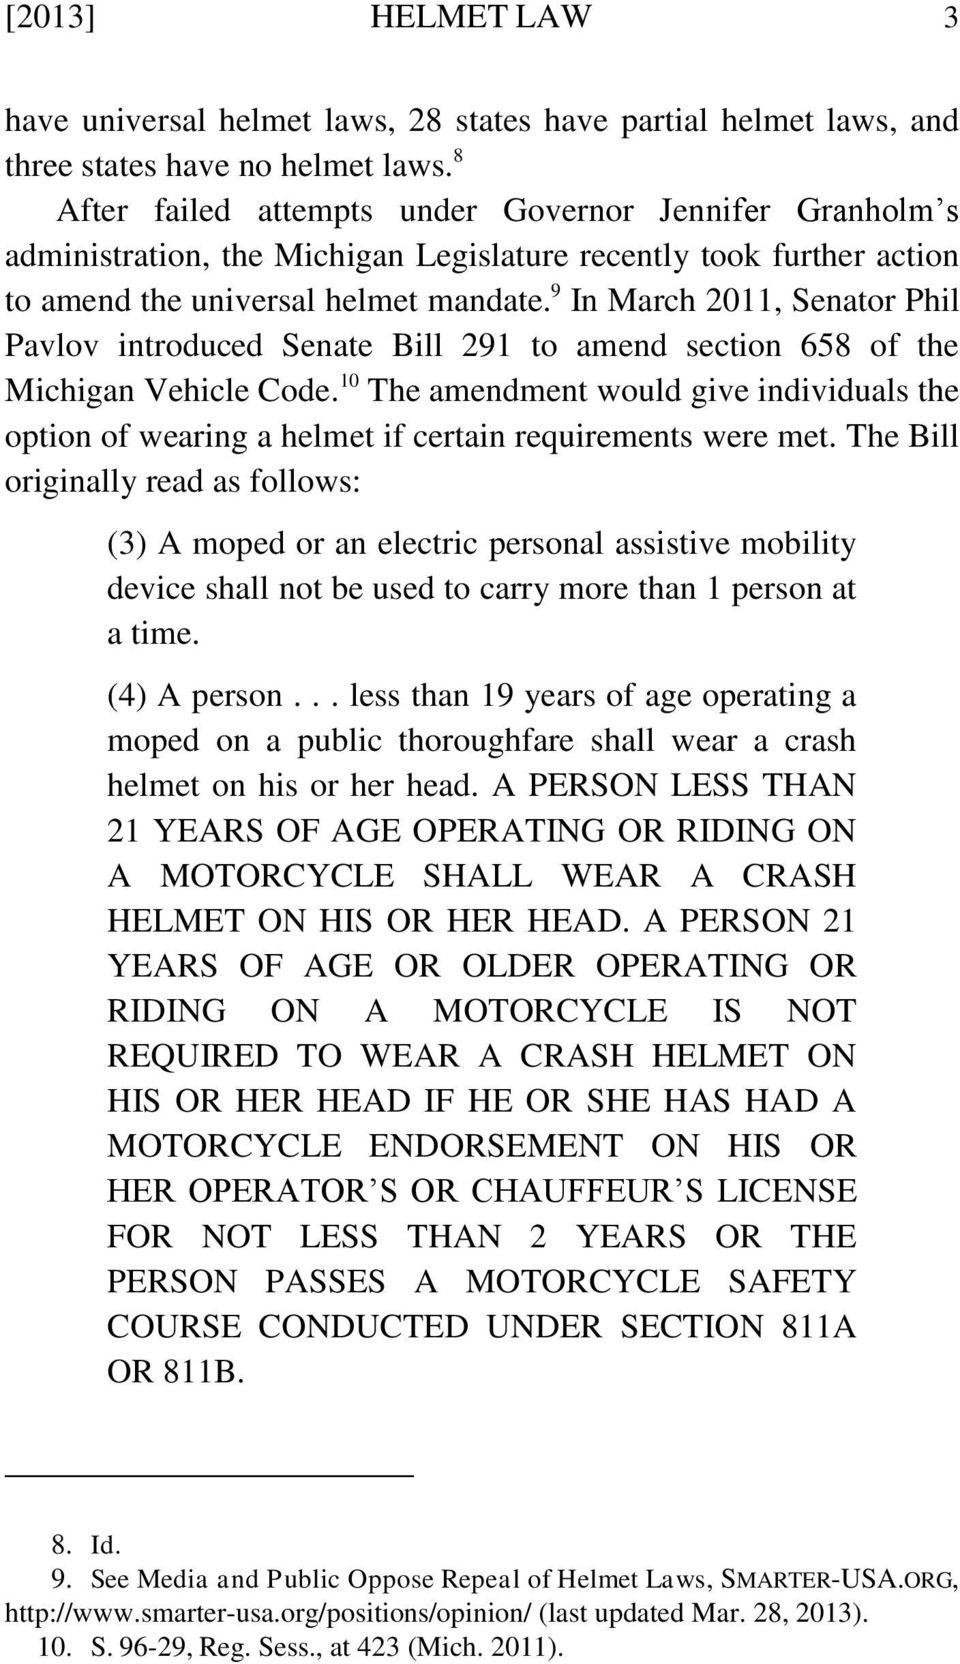 9 In March 2011, Senator Phil Pavlov introduced Senate Bill 291 to amend section 658 of the Michigan Vehicle Code.